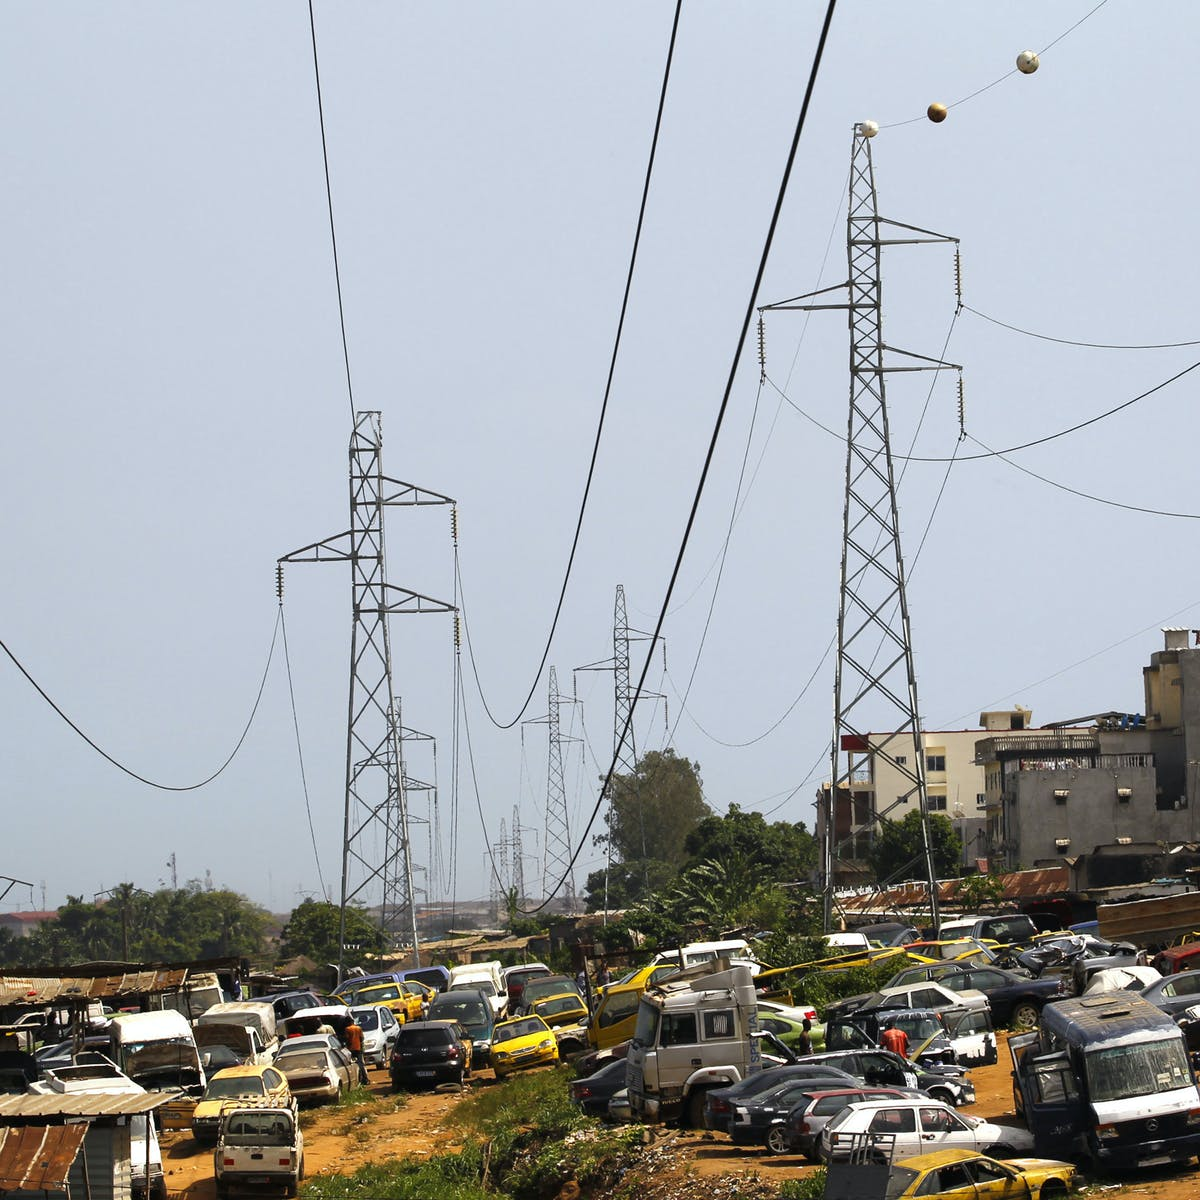 Why foreign investment is no easy fix for Africa's energy needs